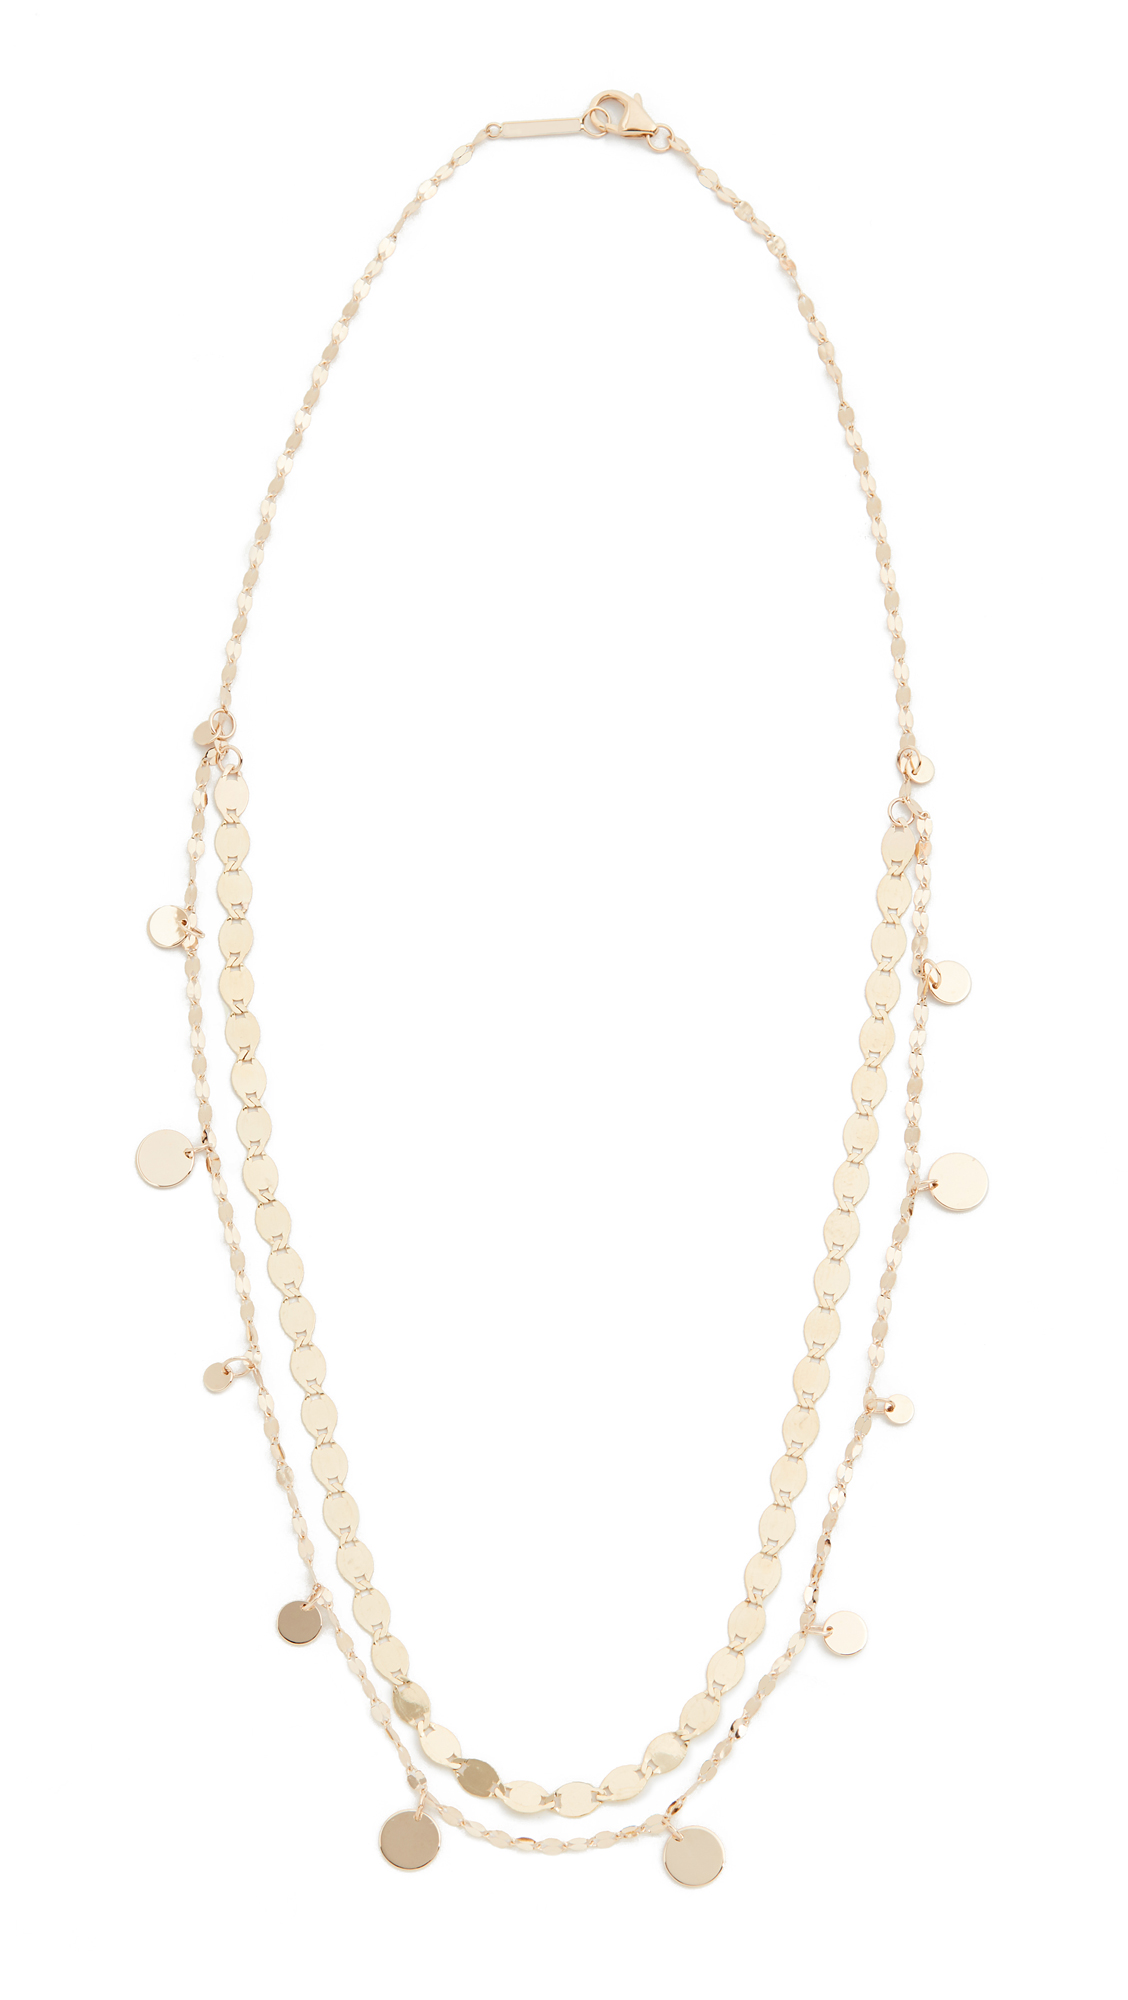 Lana Jewelry Gypsy Disc Necklace In Yellow Gold